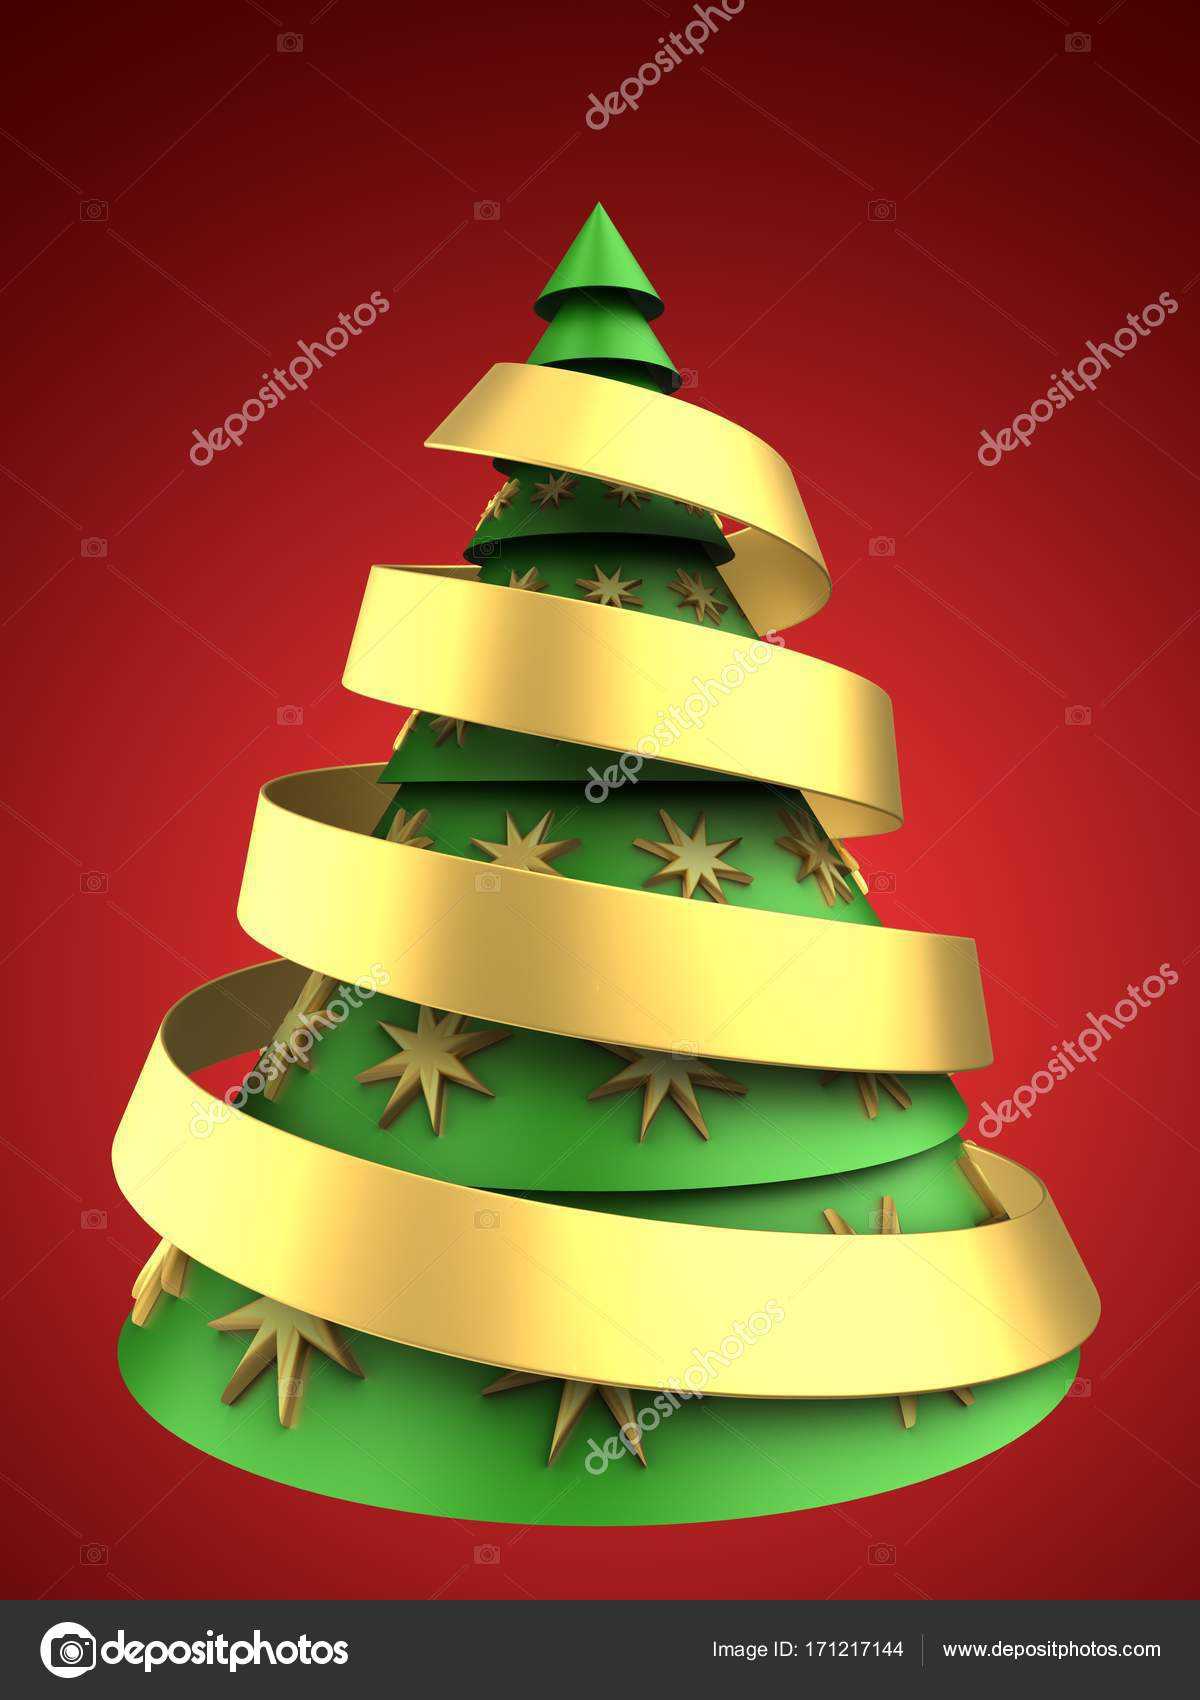 3D Illustration Of Christmas Tree Over Red Background With Ribbon